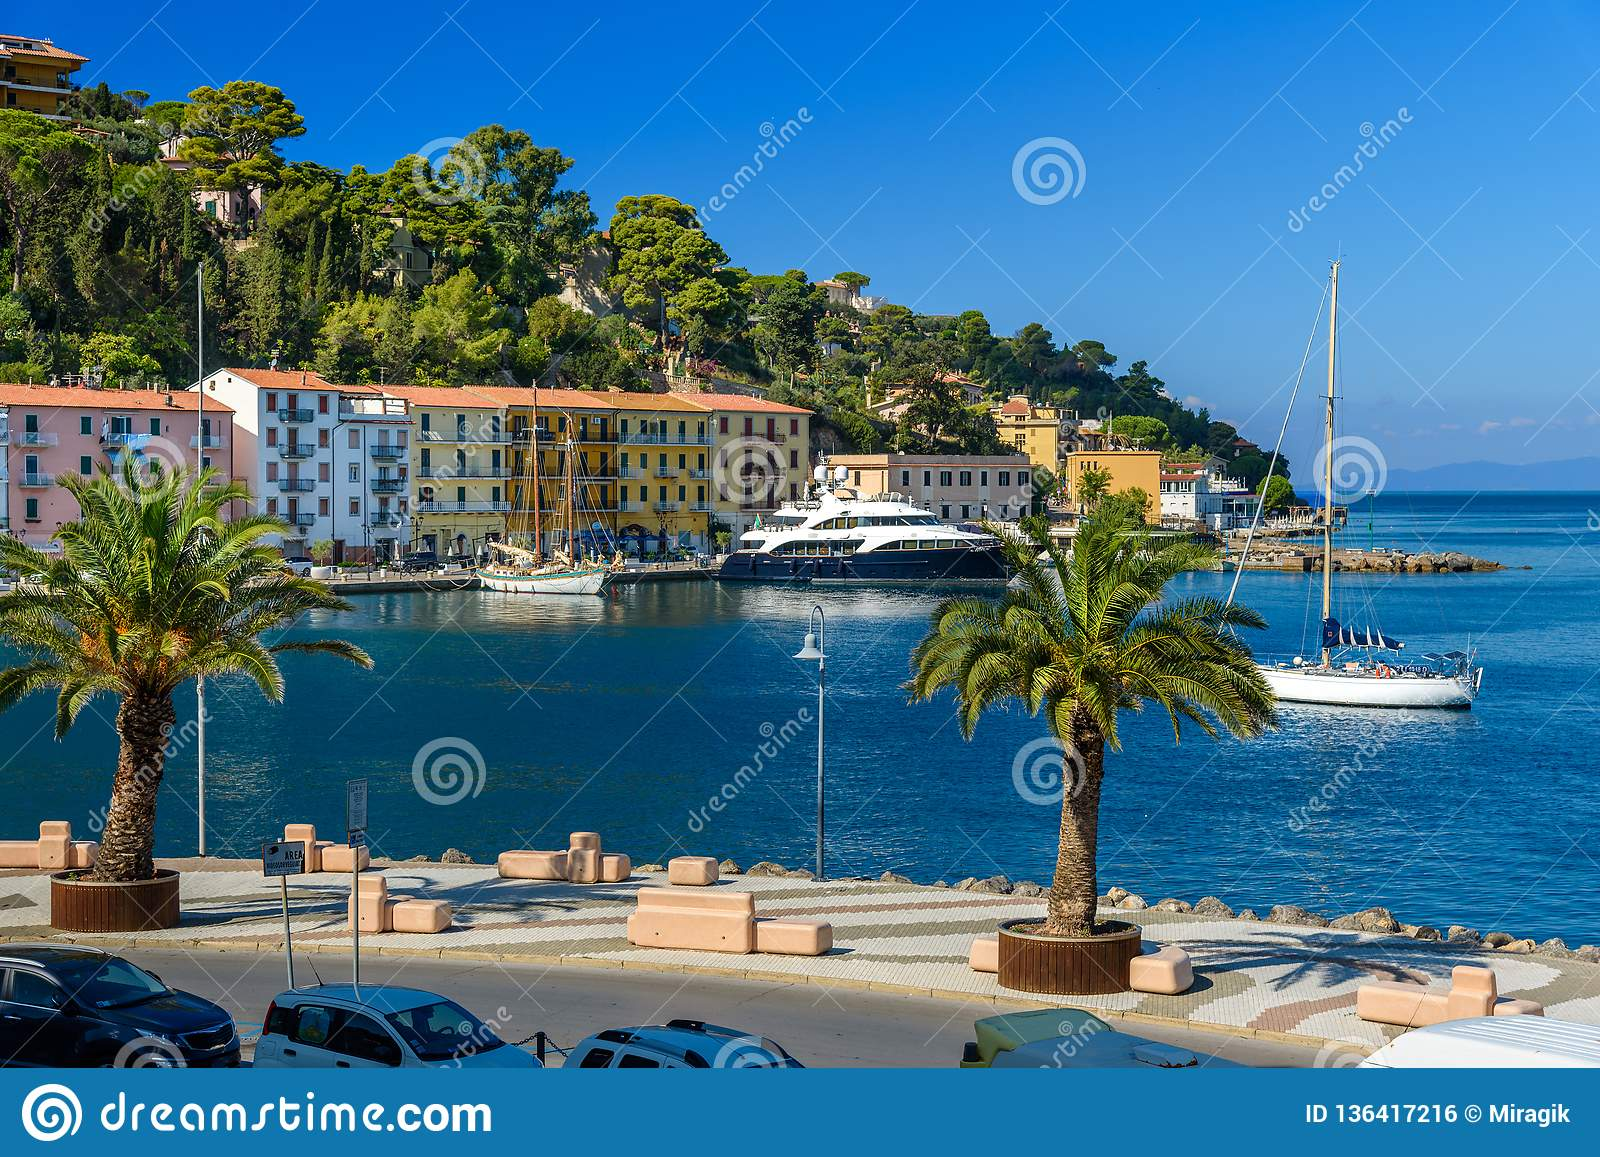 Seafront of seaport town Porto Santo Stefano in Monte Argentario. Tuscany. Italy